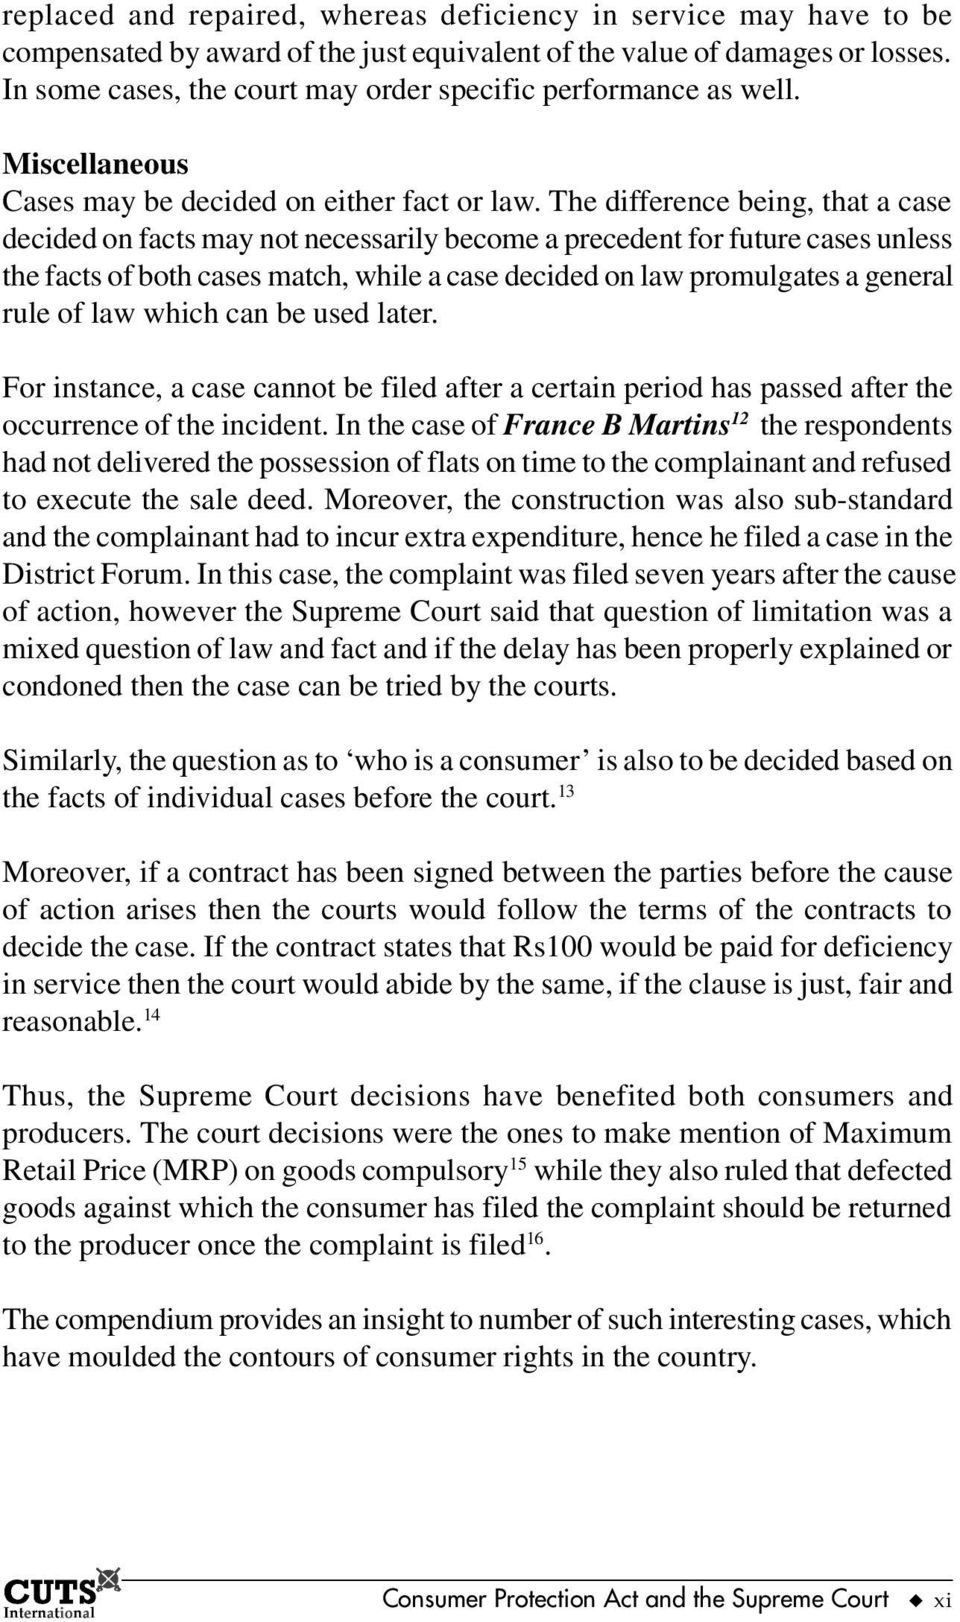 The difference being, that a case decided on facts may not necessarily become a precedent for future cases unless the facts of both cases match, while a case decided on law promulgates a general rule